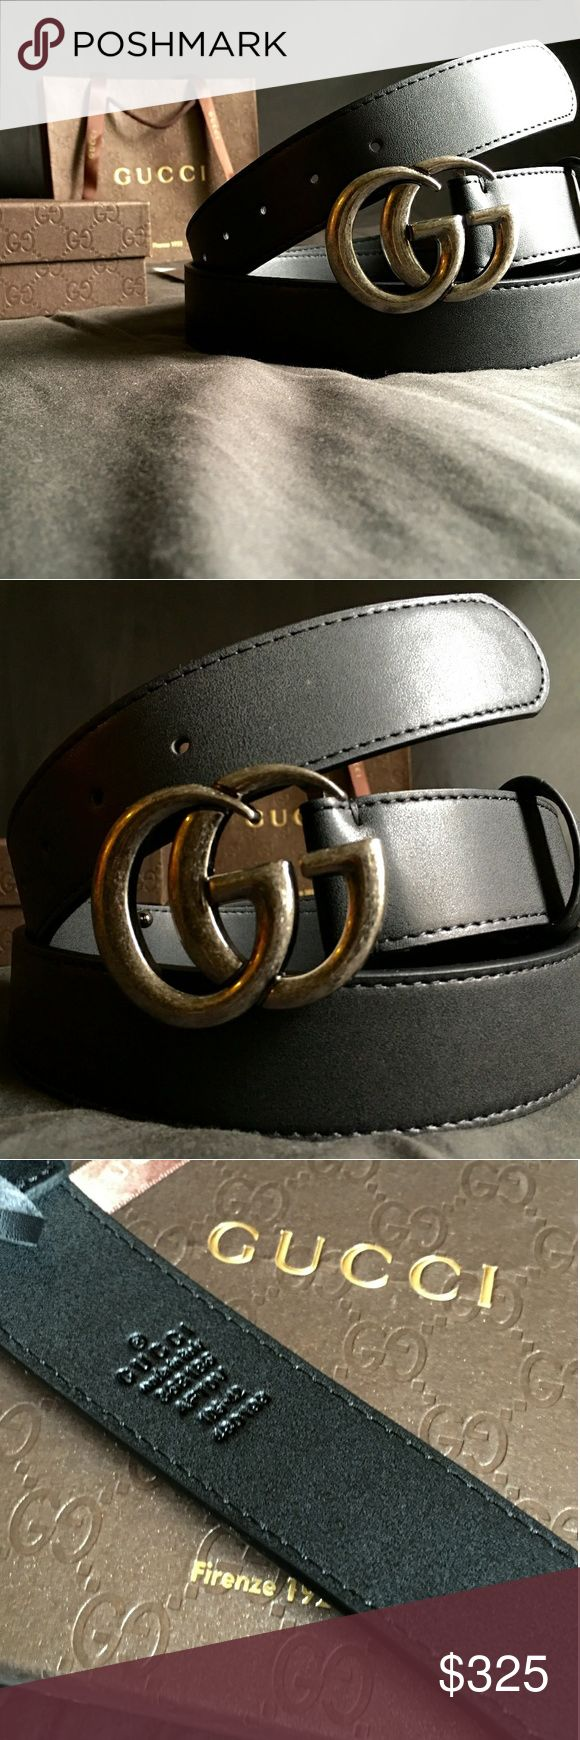 """Gucci Double G Belt!!! Gucci GG Belt W/Antique Silver Double G Buckle!!!  Brand New!!!  Unisex....For Man Or Woman!!!  Size Available - 32"""", 34"""", 36"""", 38"""", 40"""", 42""""!!!  Includes Gucci Belt, Gift Box, Dust Bag, Ribbon, Etc!!!  Great Gift Idea!!!  Last Available!!!  Check My Listings For Other Great Items!!!               Ignore: Gucci gg monogram casual dress belts men's women's guccissma leather gold silver web tiger bee embossed panther wool cable knit blooms supreme print angry cat ufo…"""